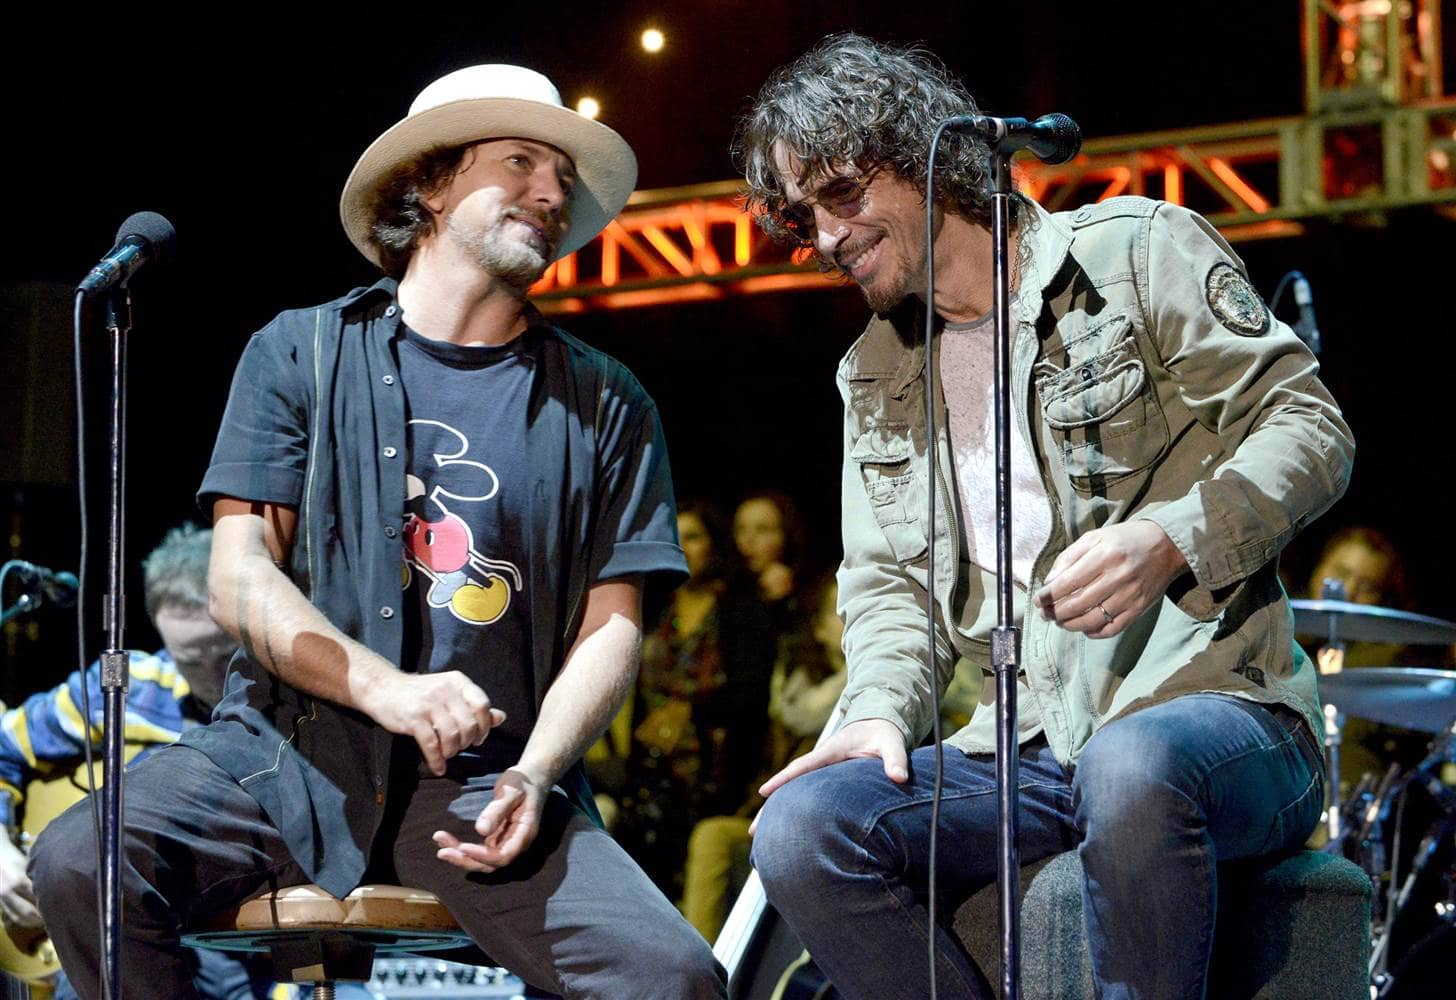 Eddie Vedder and Chris Cornell smiling together on stage